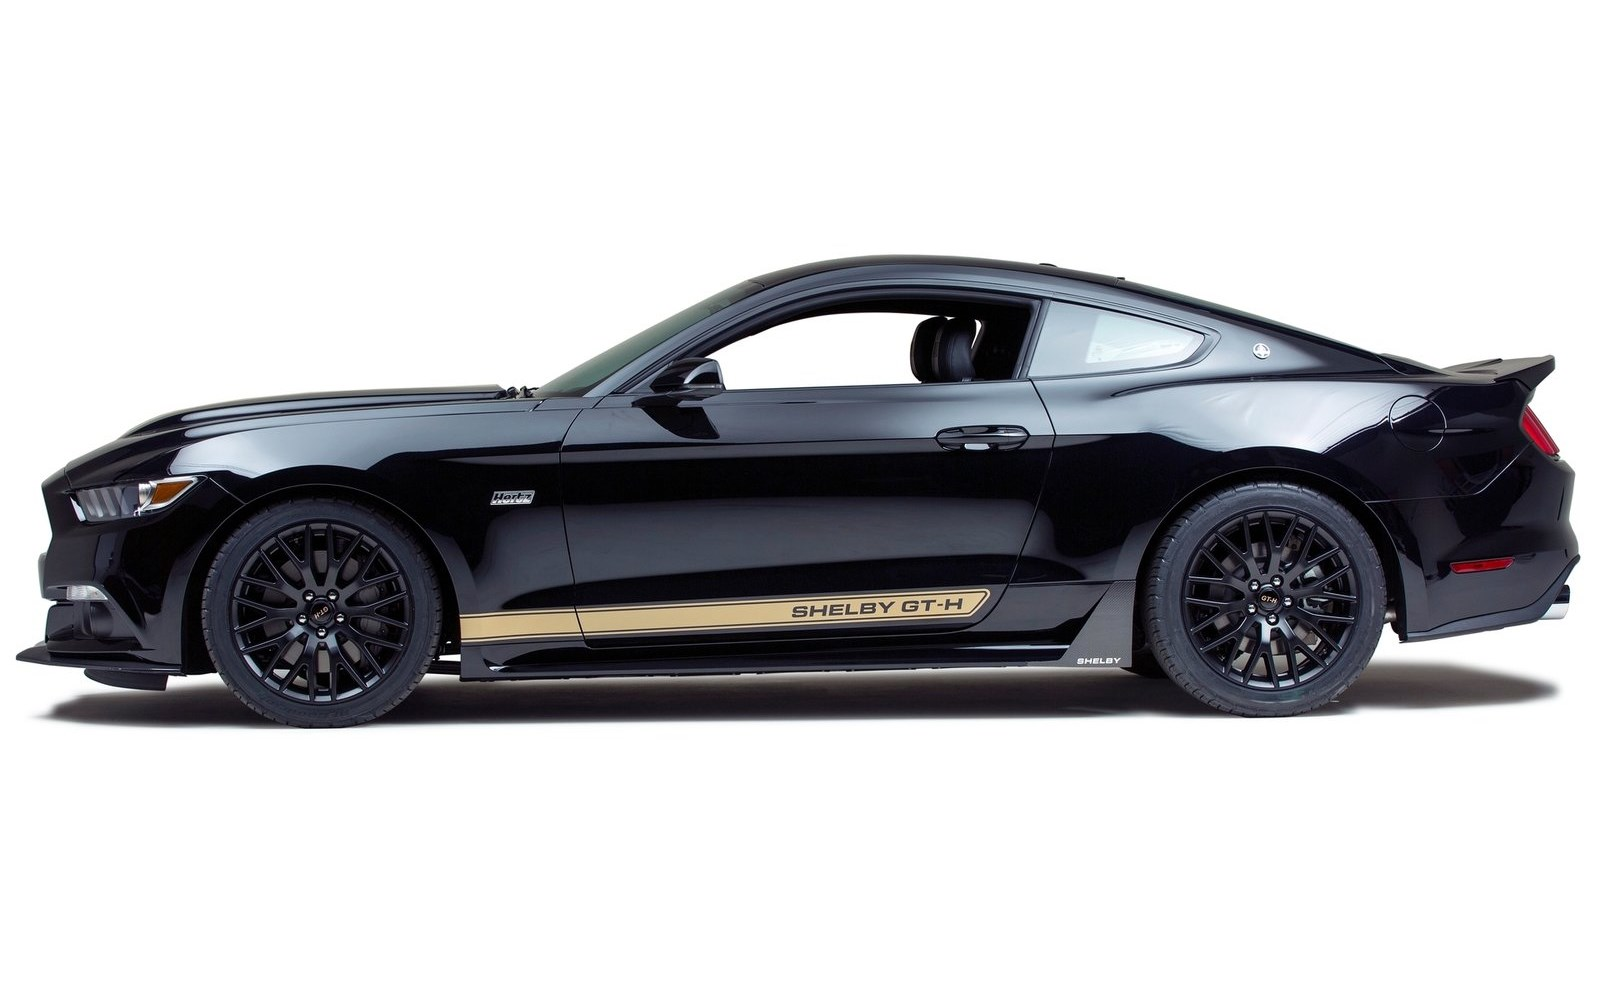 Shelby GT-H